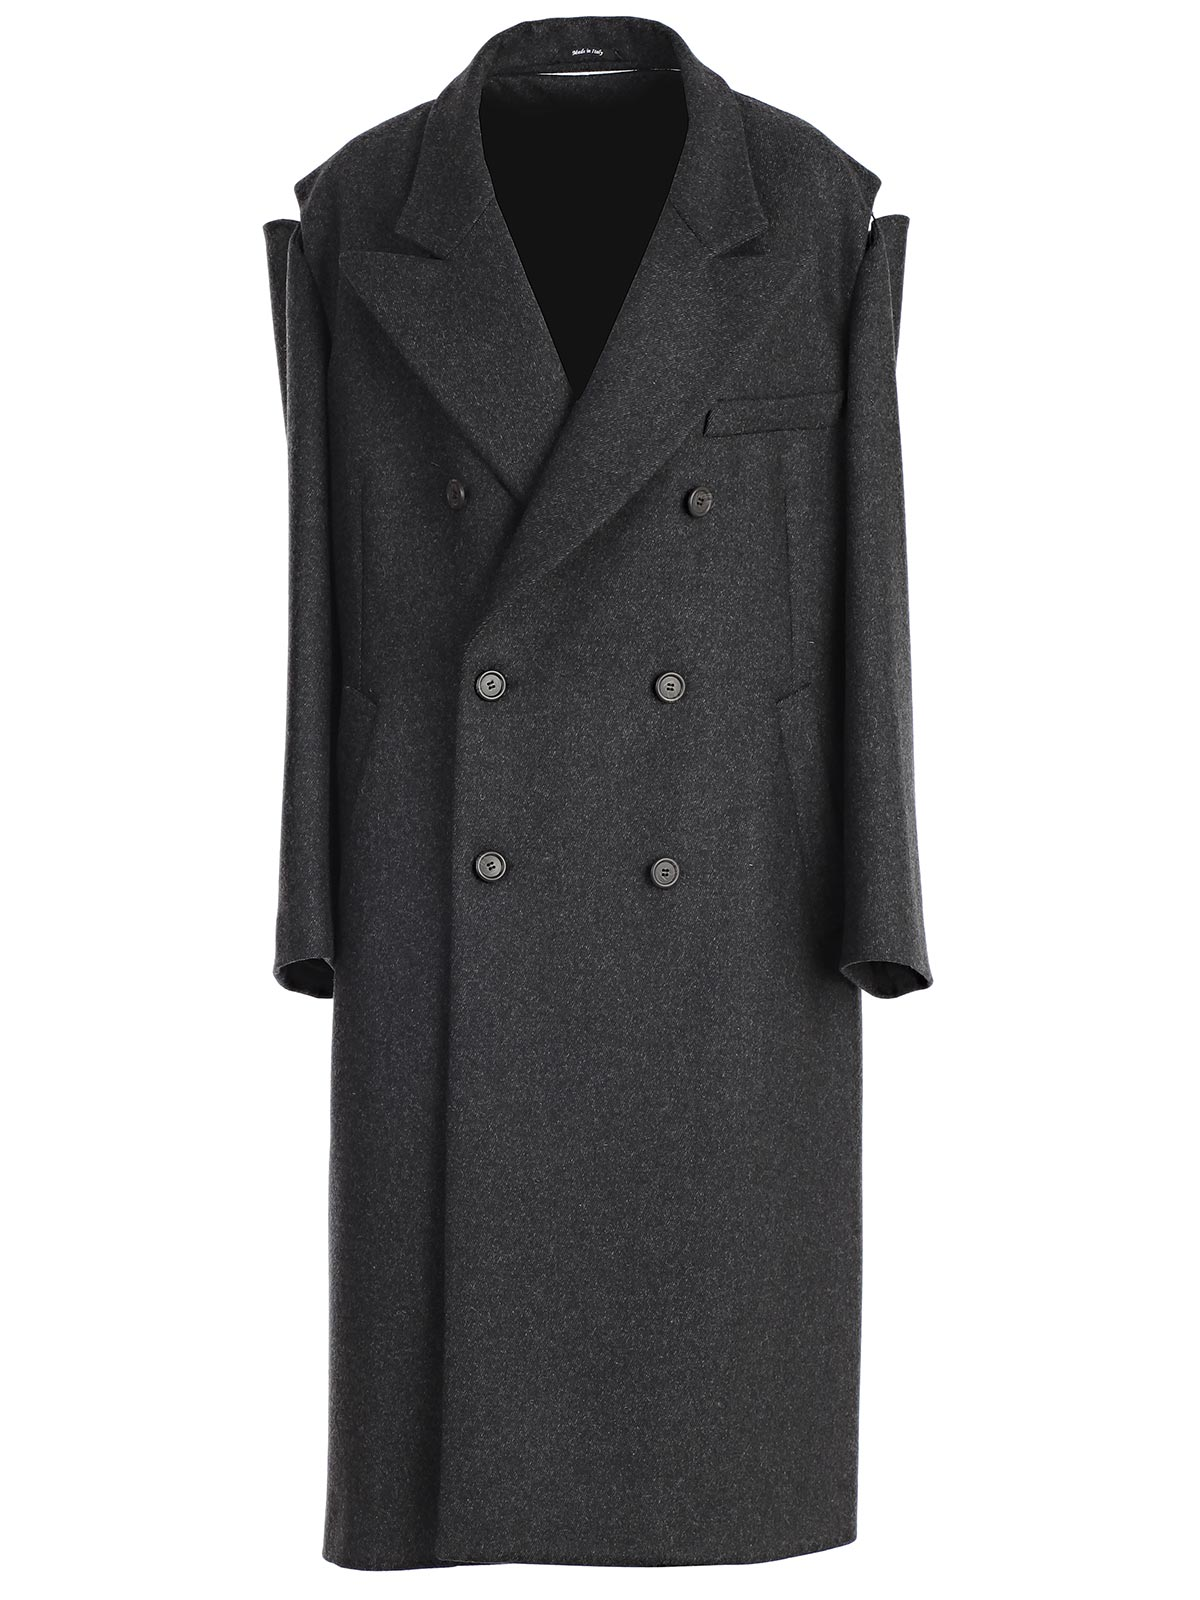 Picture of Maison Margiela Double Breasted & Peacoat